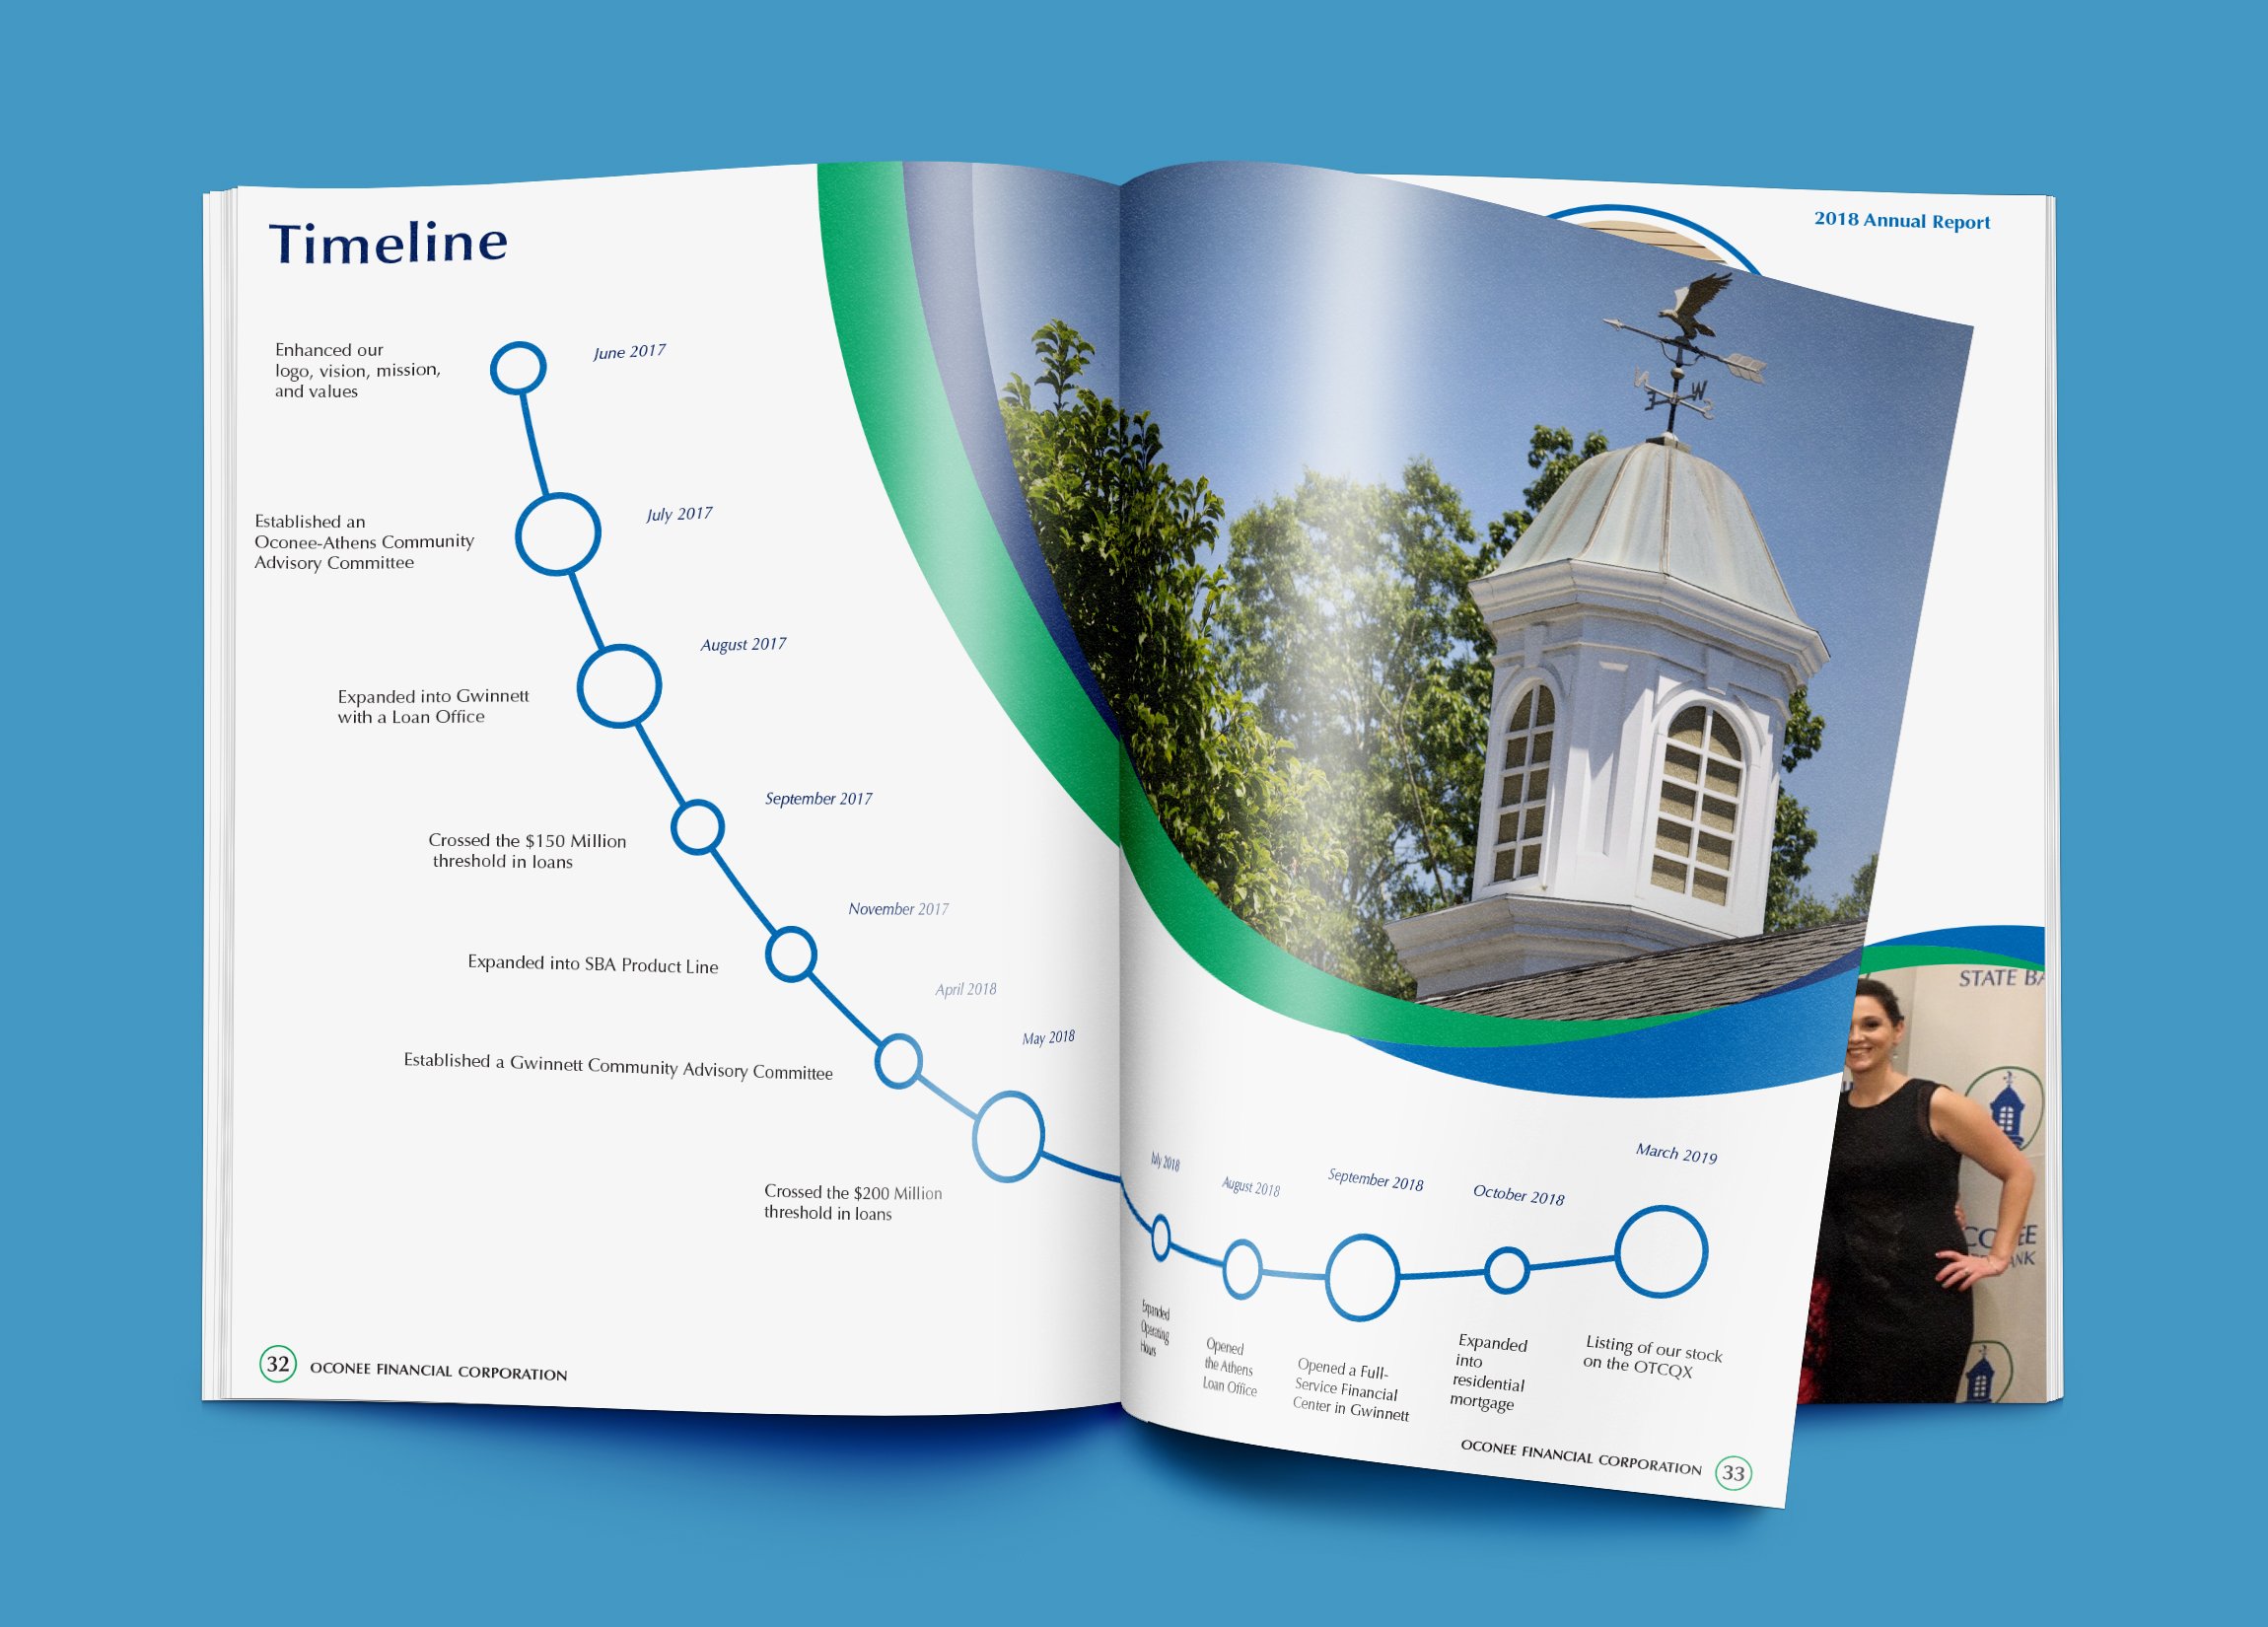 Oconee State Bank - 2018 Annual Report